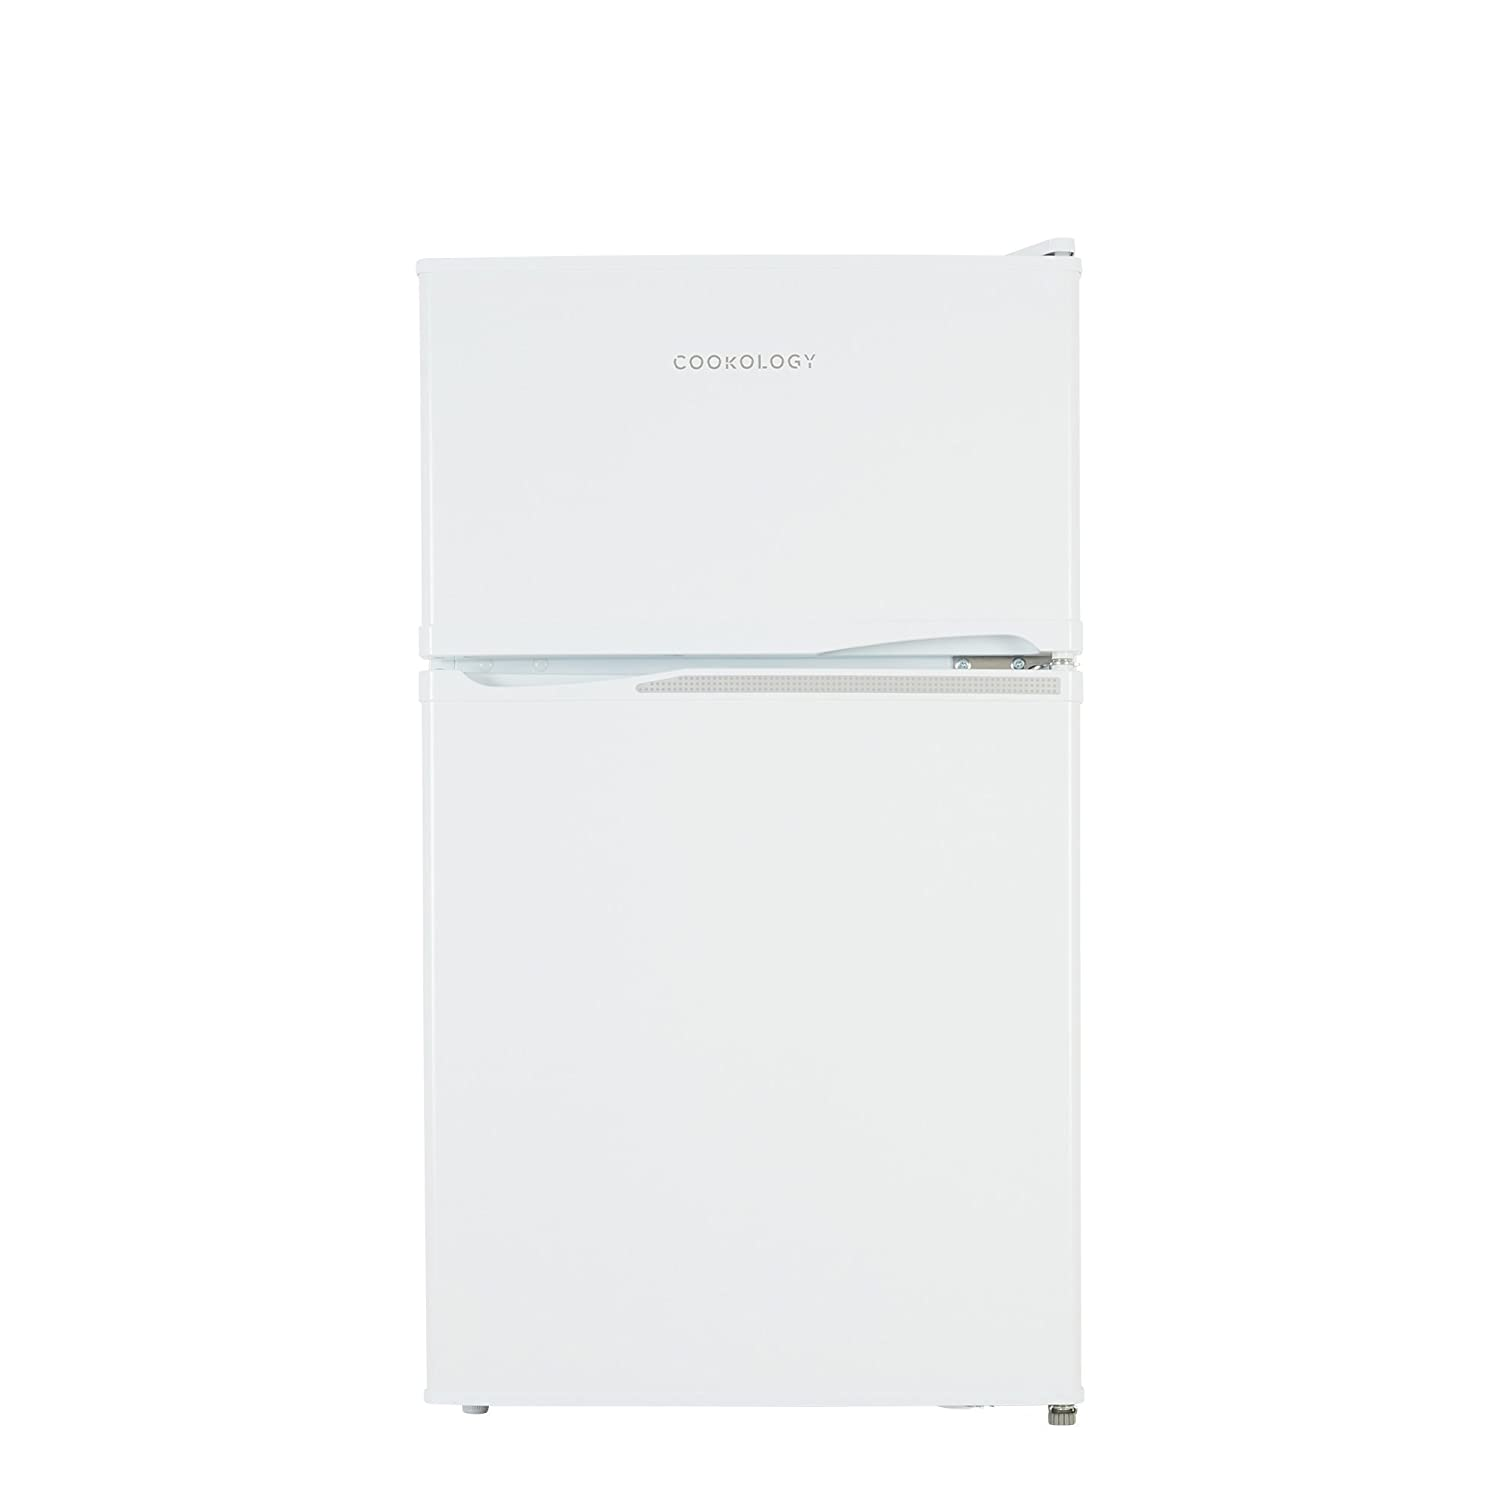 Cookology UCFF87WH 47cm Freestanding Undercounter 2 Door Fridge Freezer in White [Energy Class A+]